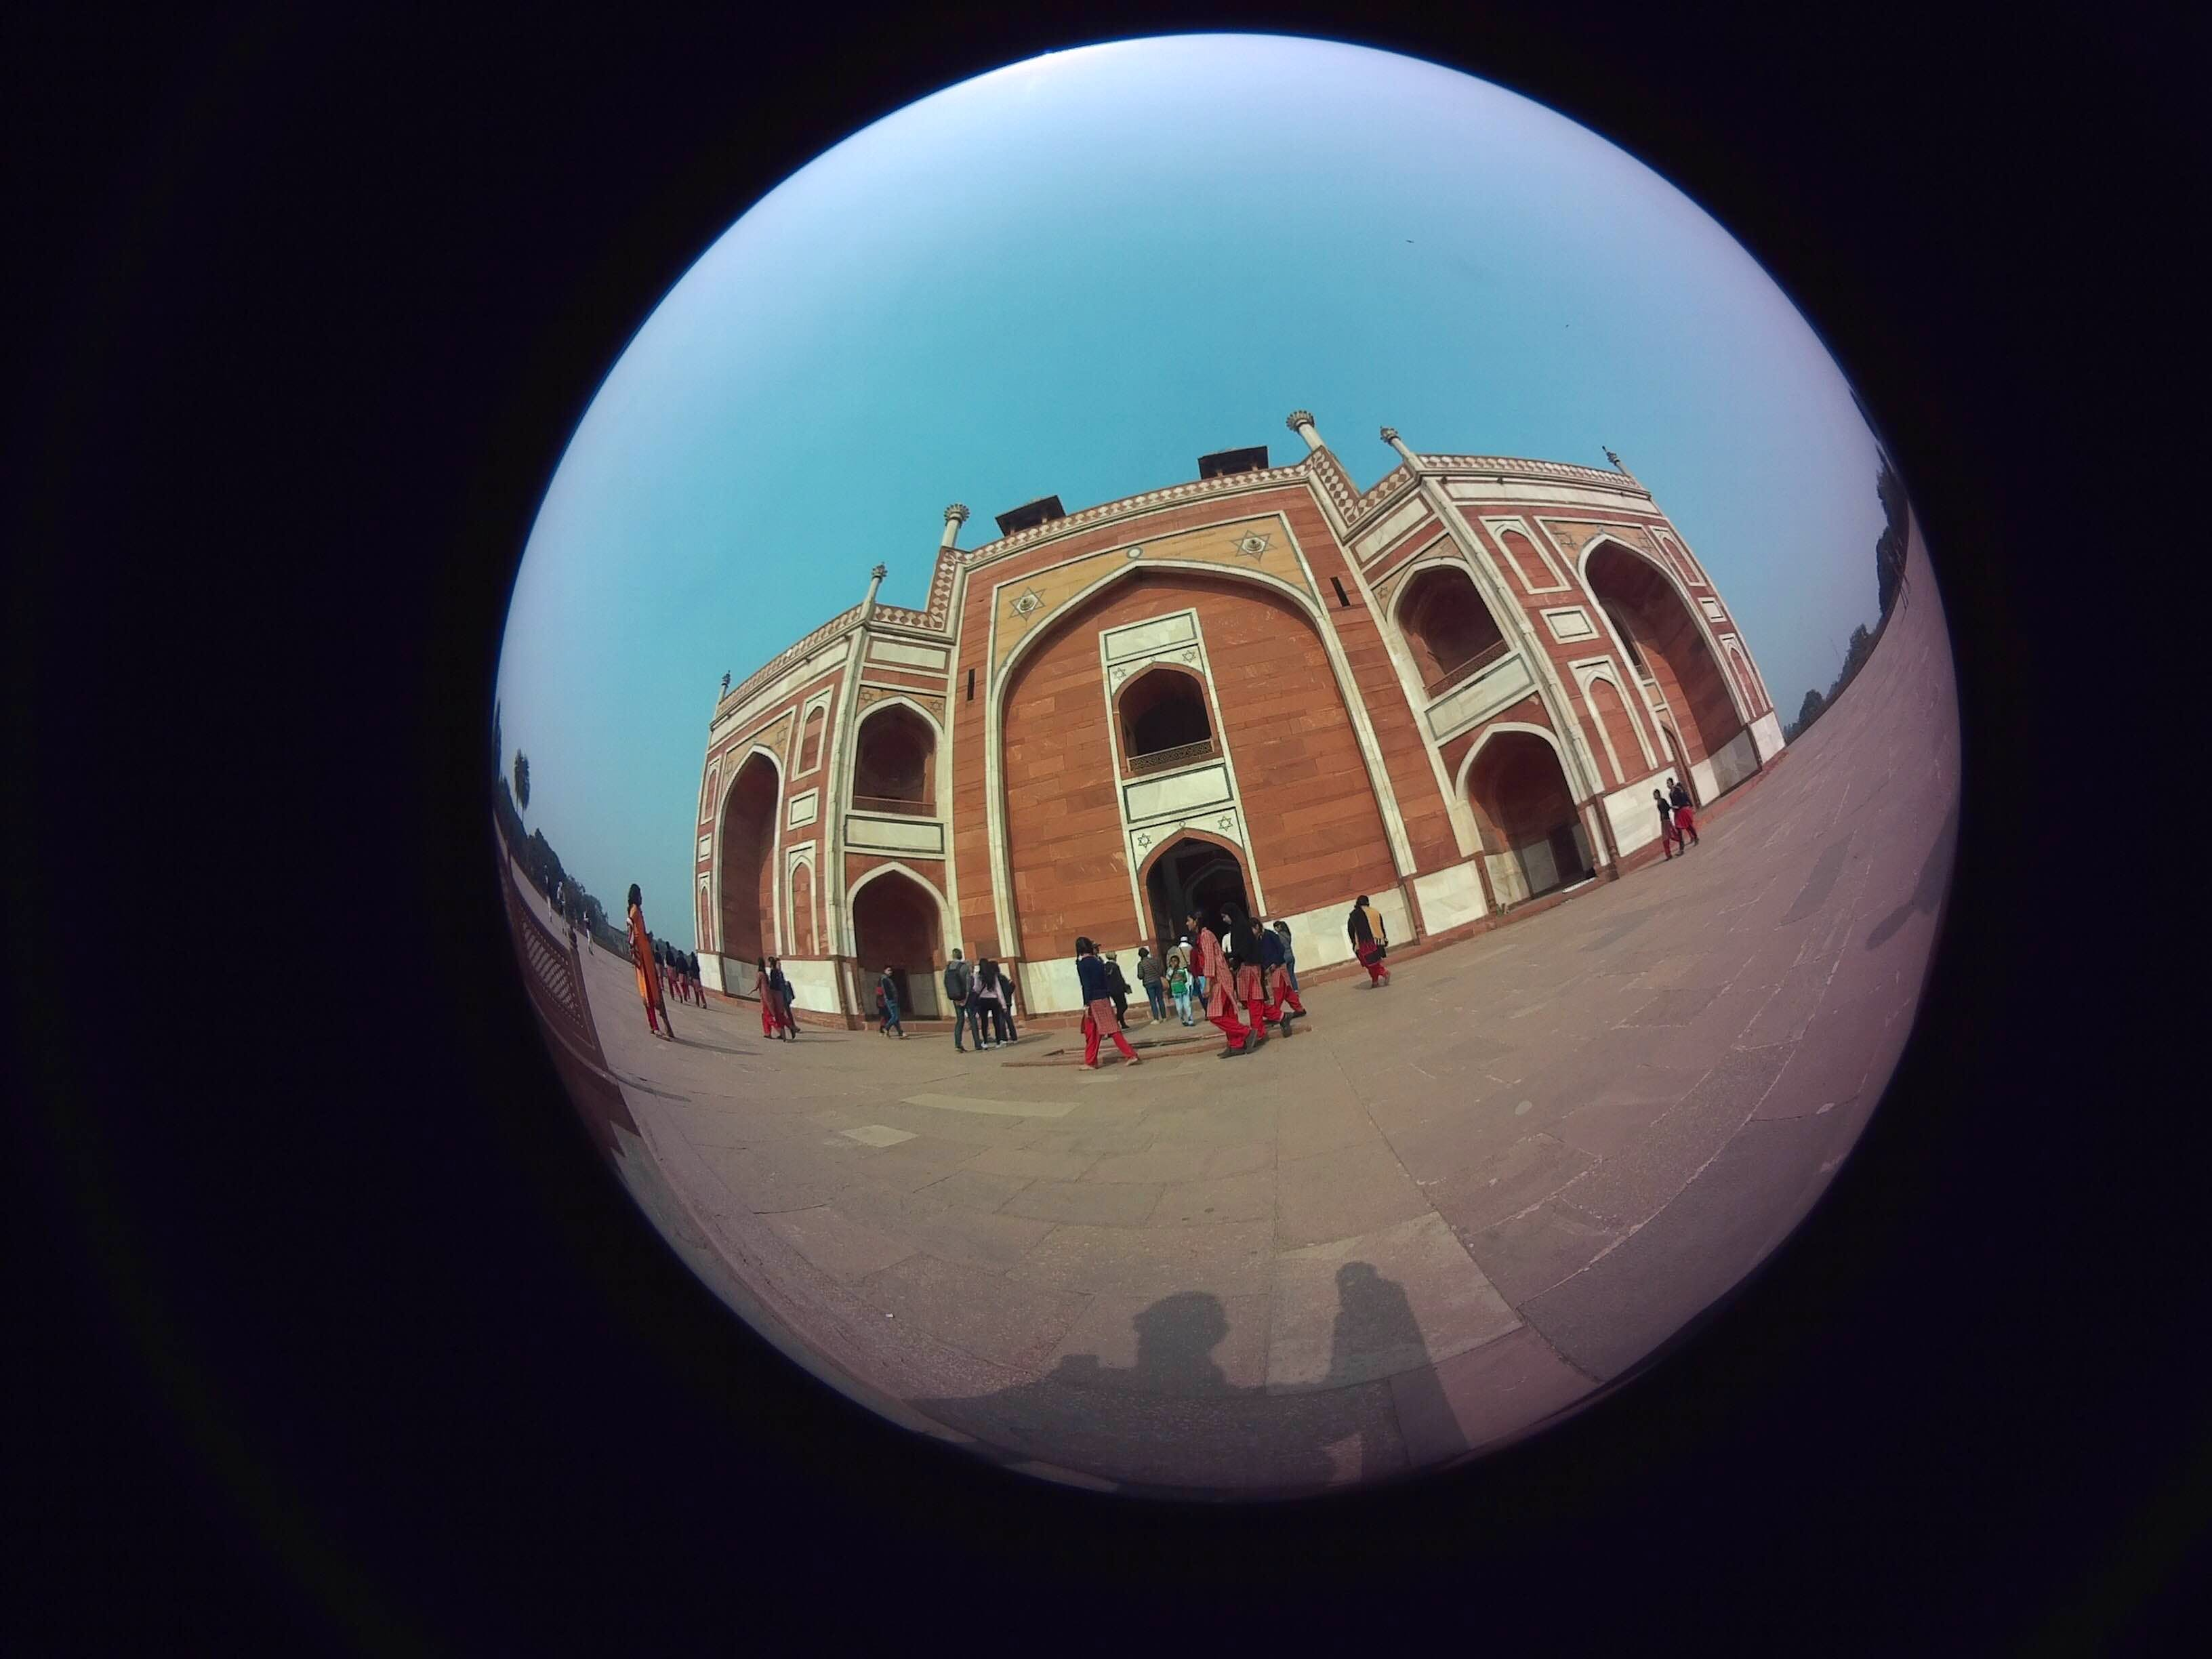 Fisheye lens,Dome,Dome,Photography,Architecture,Sky,Sphere,Building,World,Historic site